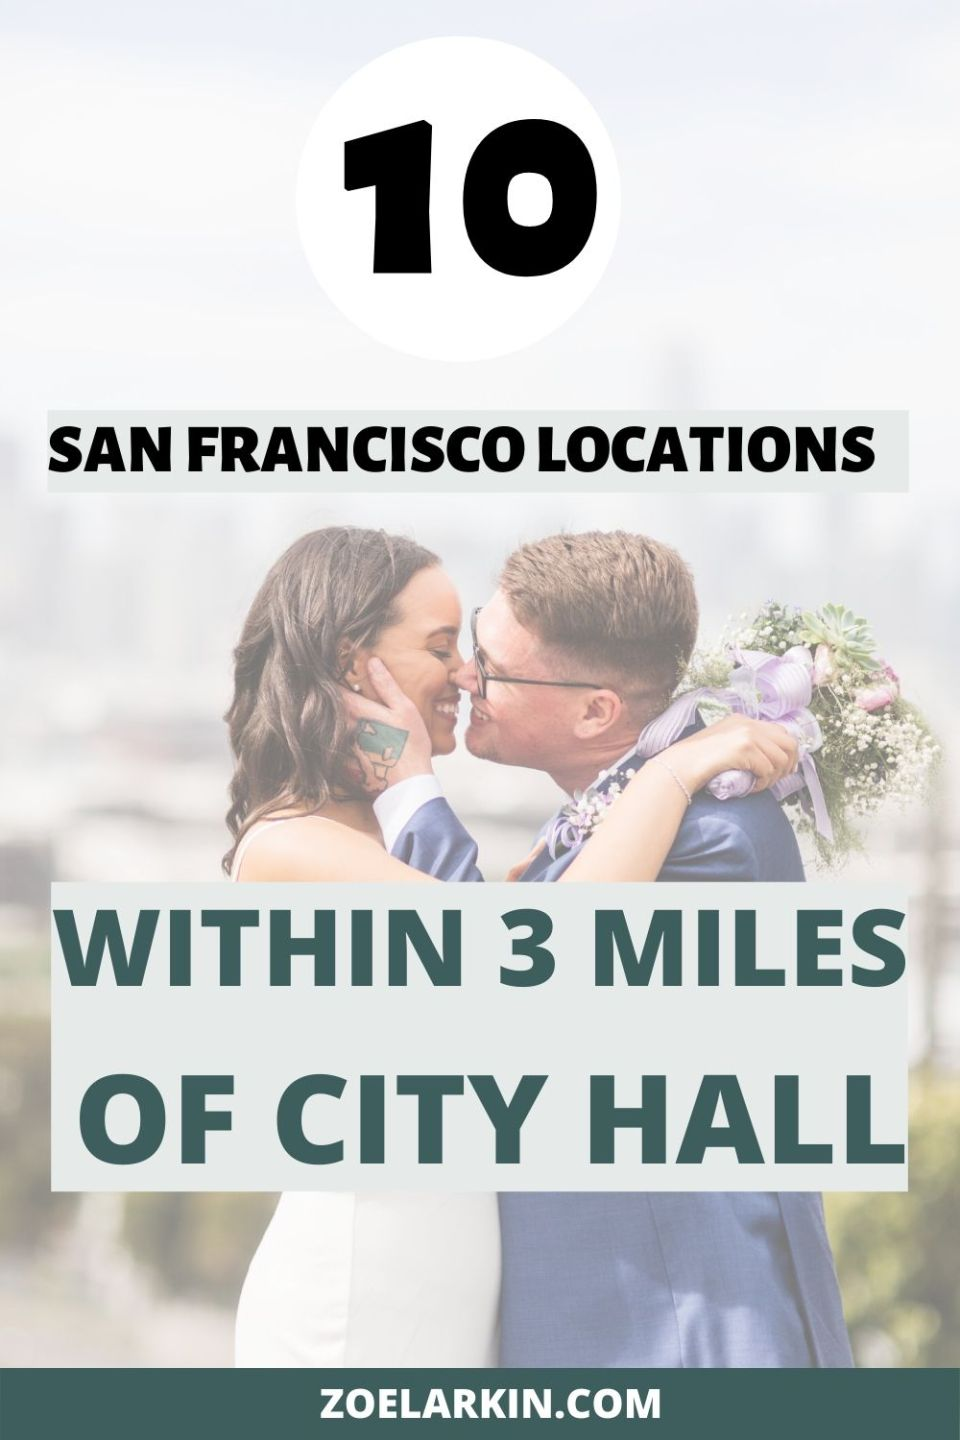 Figuring out where to visit after your San Francisco City Hall wedding for sweet photos of you newlyweds? I've curated a selection of 10 super pretty places that are less than 3 miles from San Francisco City Hall! #cityhall #sfcityhall | Zoe Larkin Photography